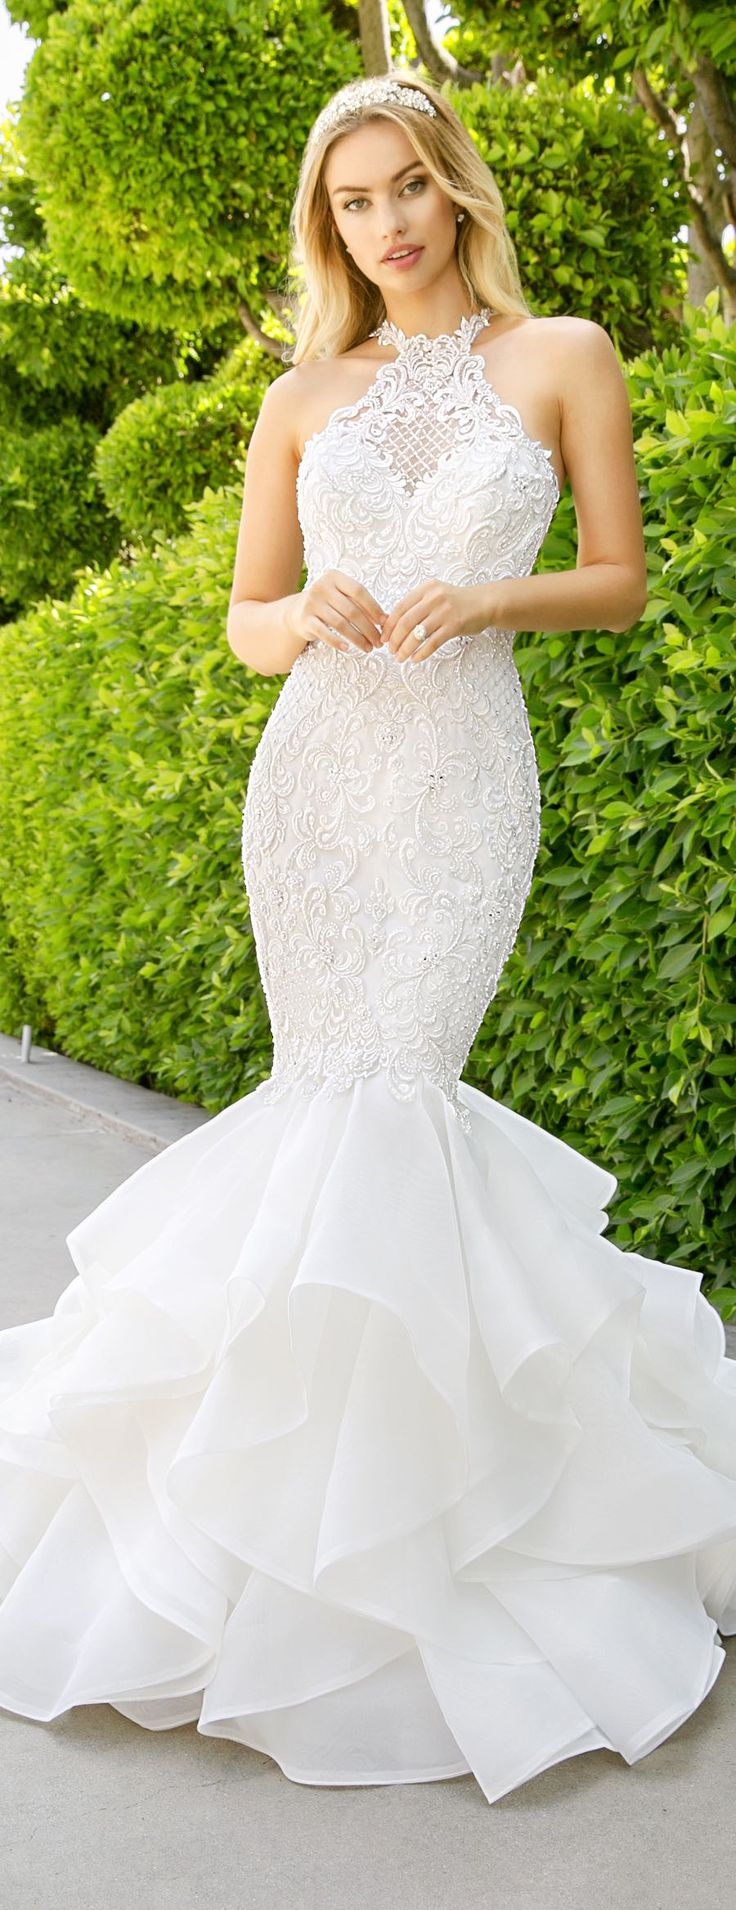 Lace wedding dress open back say yes dress october 2018  best Michigan Weddings images on Pinterest  Backyard weddings